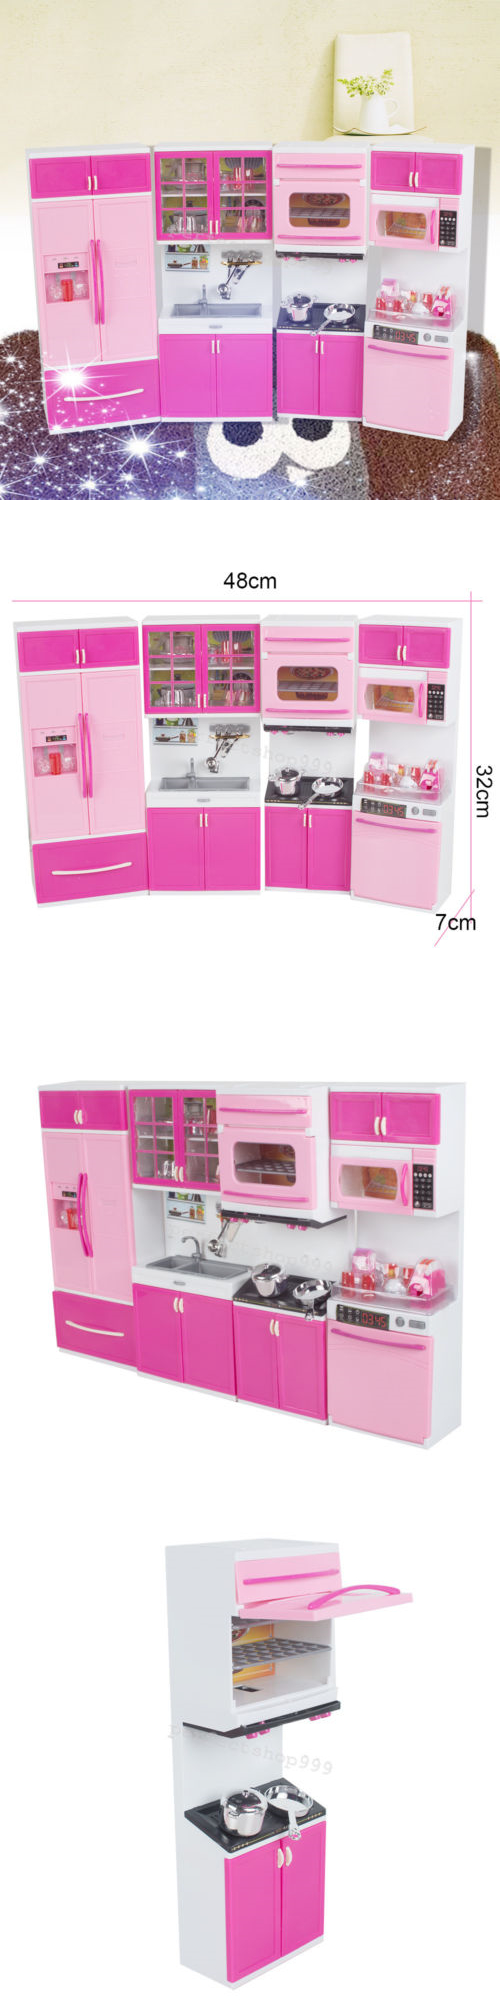 Toys for kids kitchen set  Kitchens  Cute Kitchen Pretend Play Cooking Set Cabinet Stove